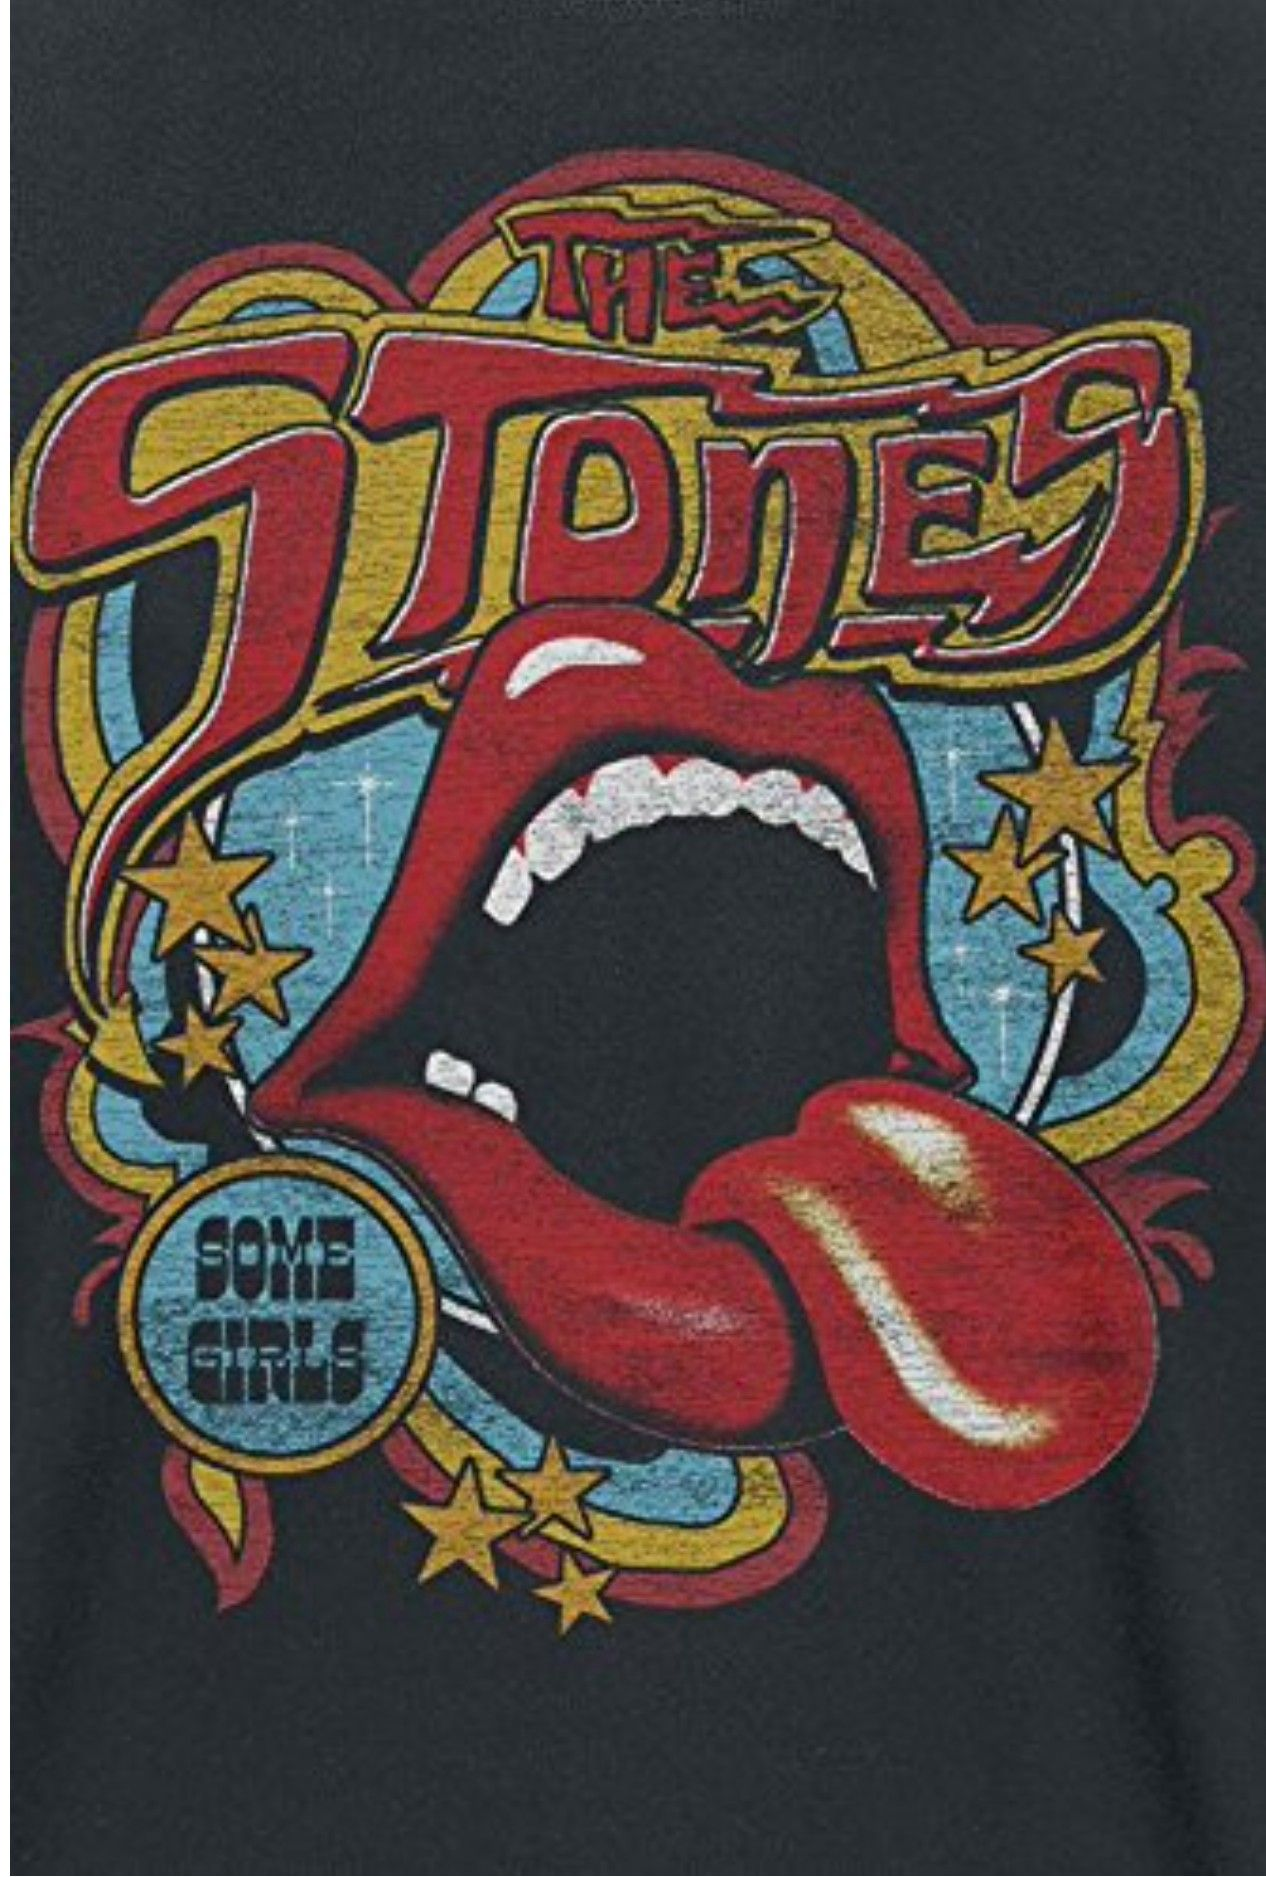 Art Image By Debbie Simpson Rolling Stones Poster Rolling Stones 70s Rock And Roll